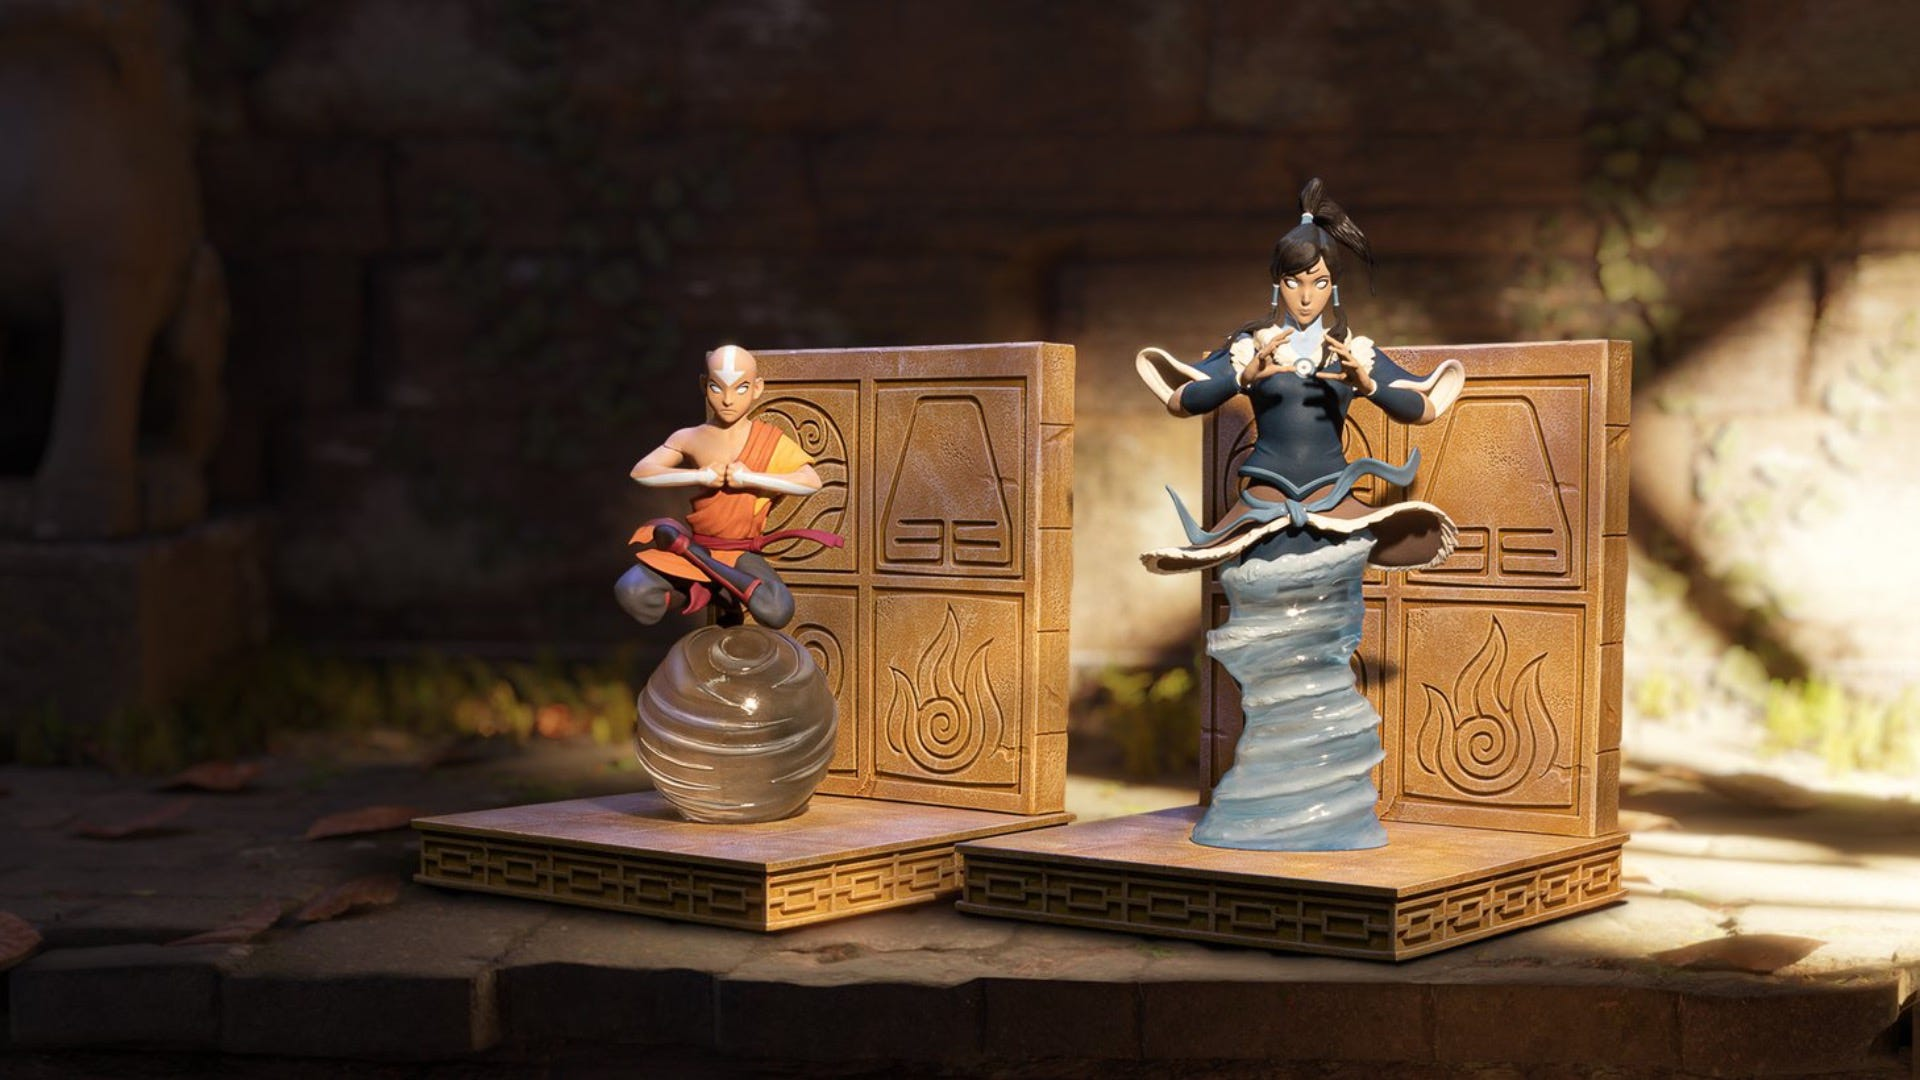 Awaken Your Avatar State With These Korra and Aang Bookends